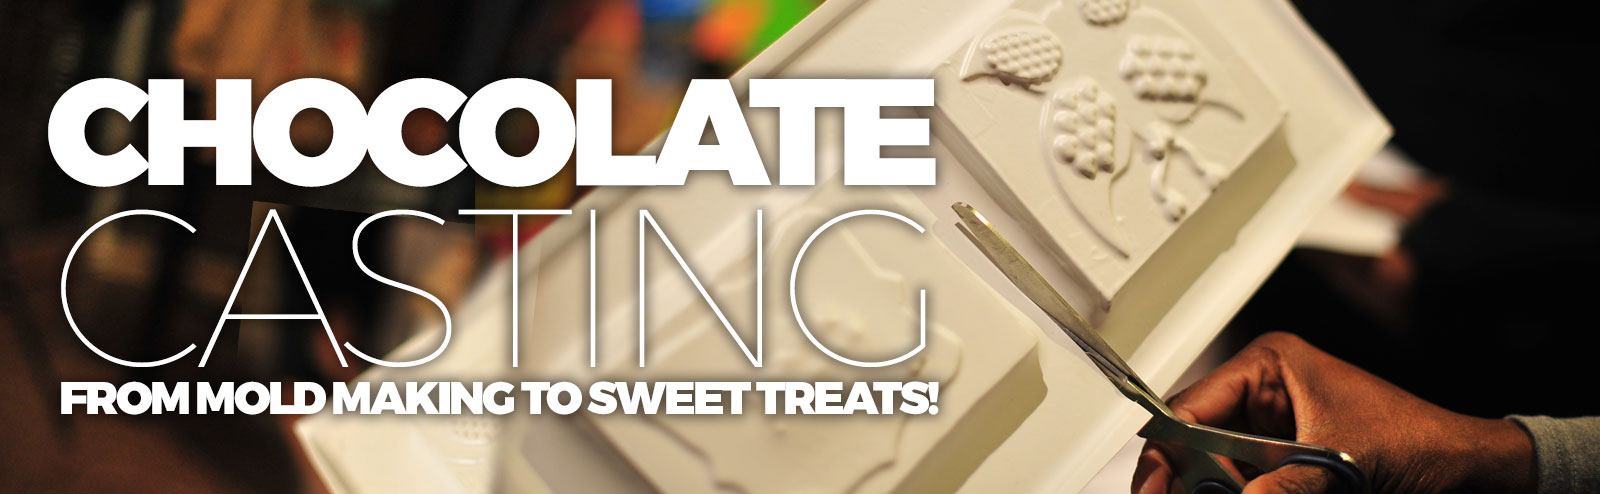 February 13+14 - Chocolate Casting